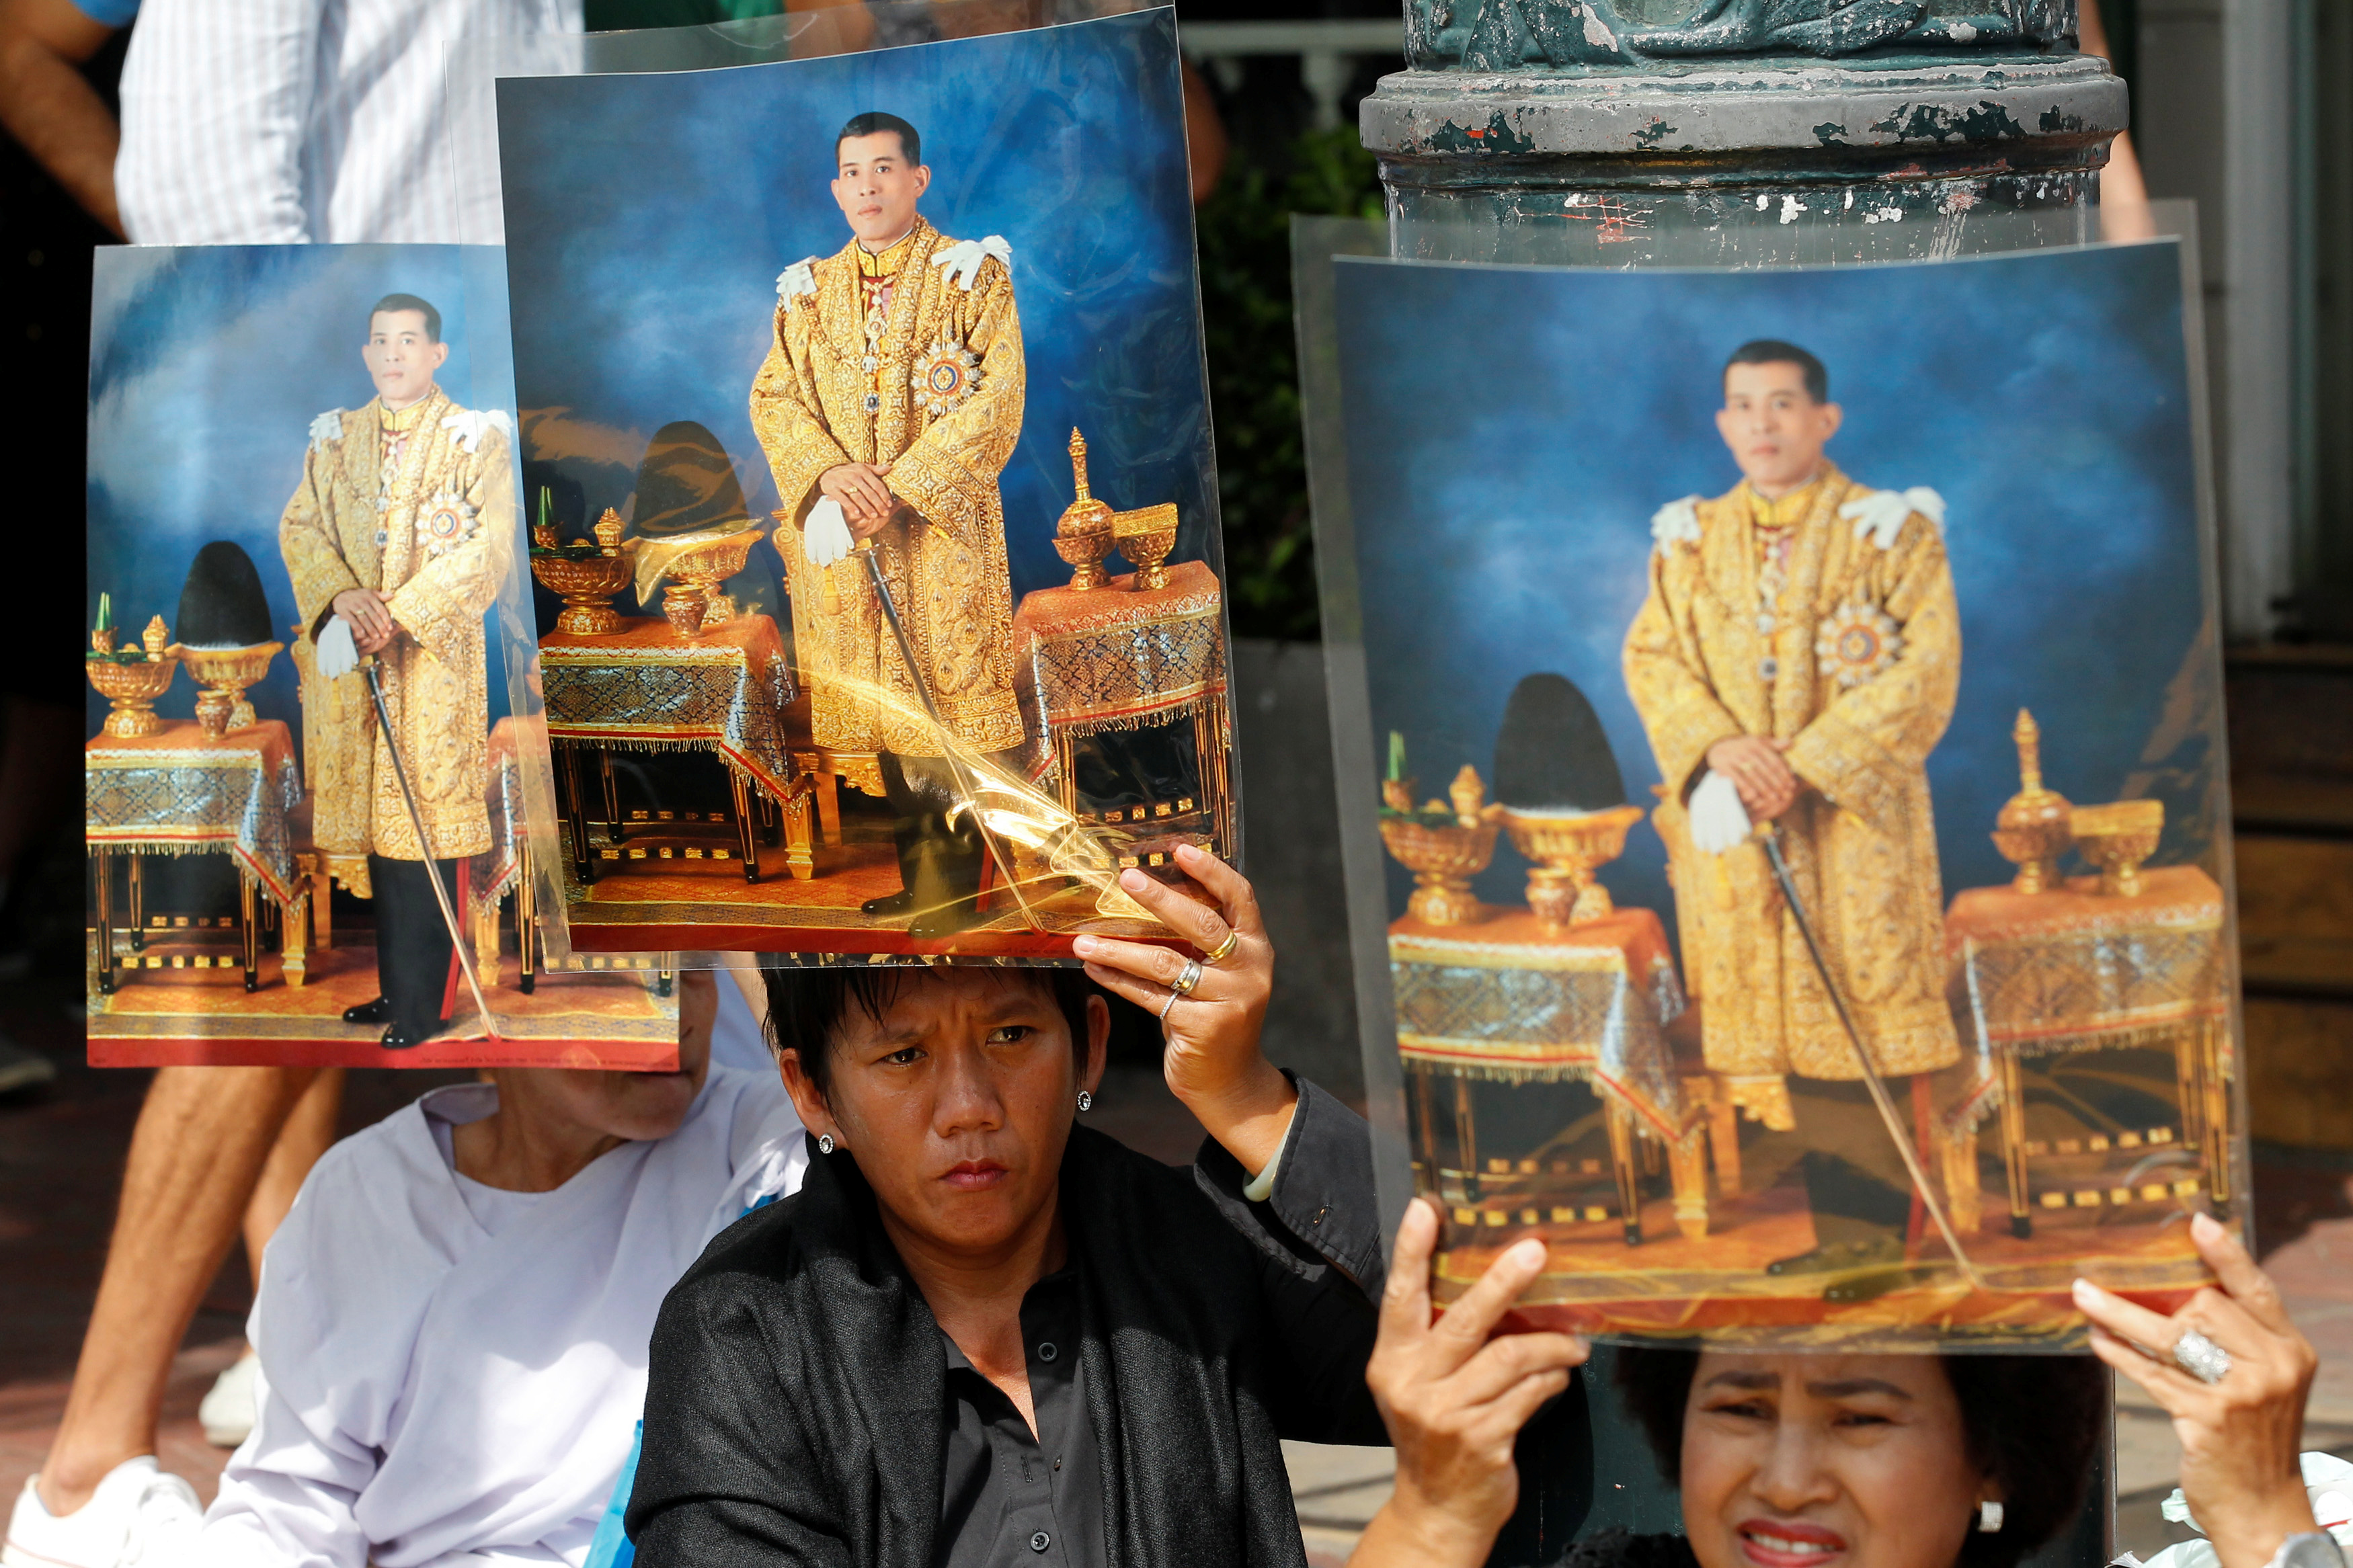 Well-wishers hold up pictures of Thailand's new King, Maha Vajiralongkorn, before he arrives at the Grand Palace in Bangkok on Dec. 2, 2016